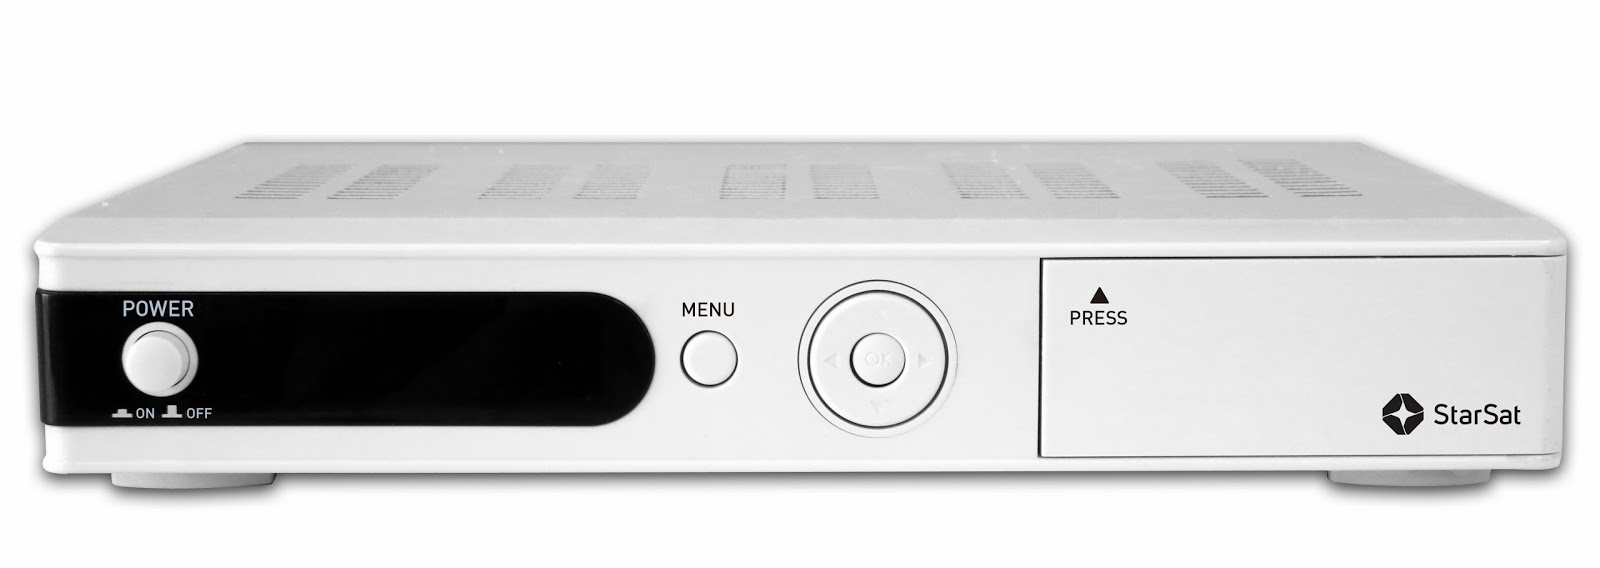 TV with Thinus: New white StarSat HD decoder from ODM and StarTimes